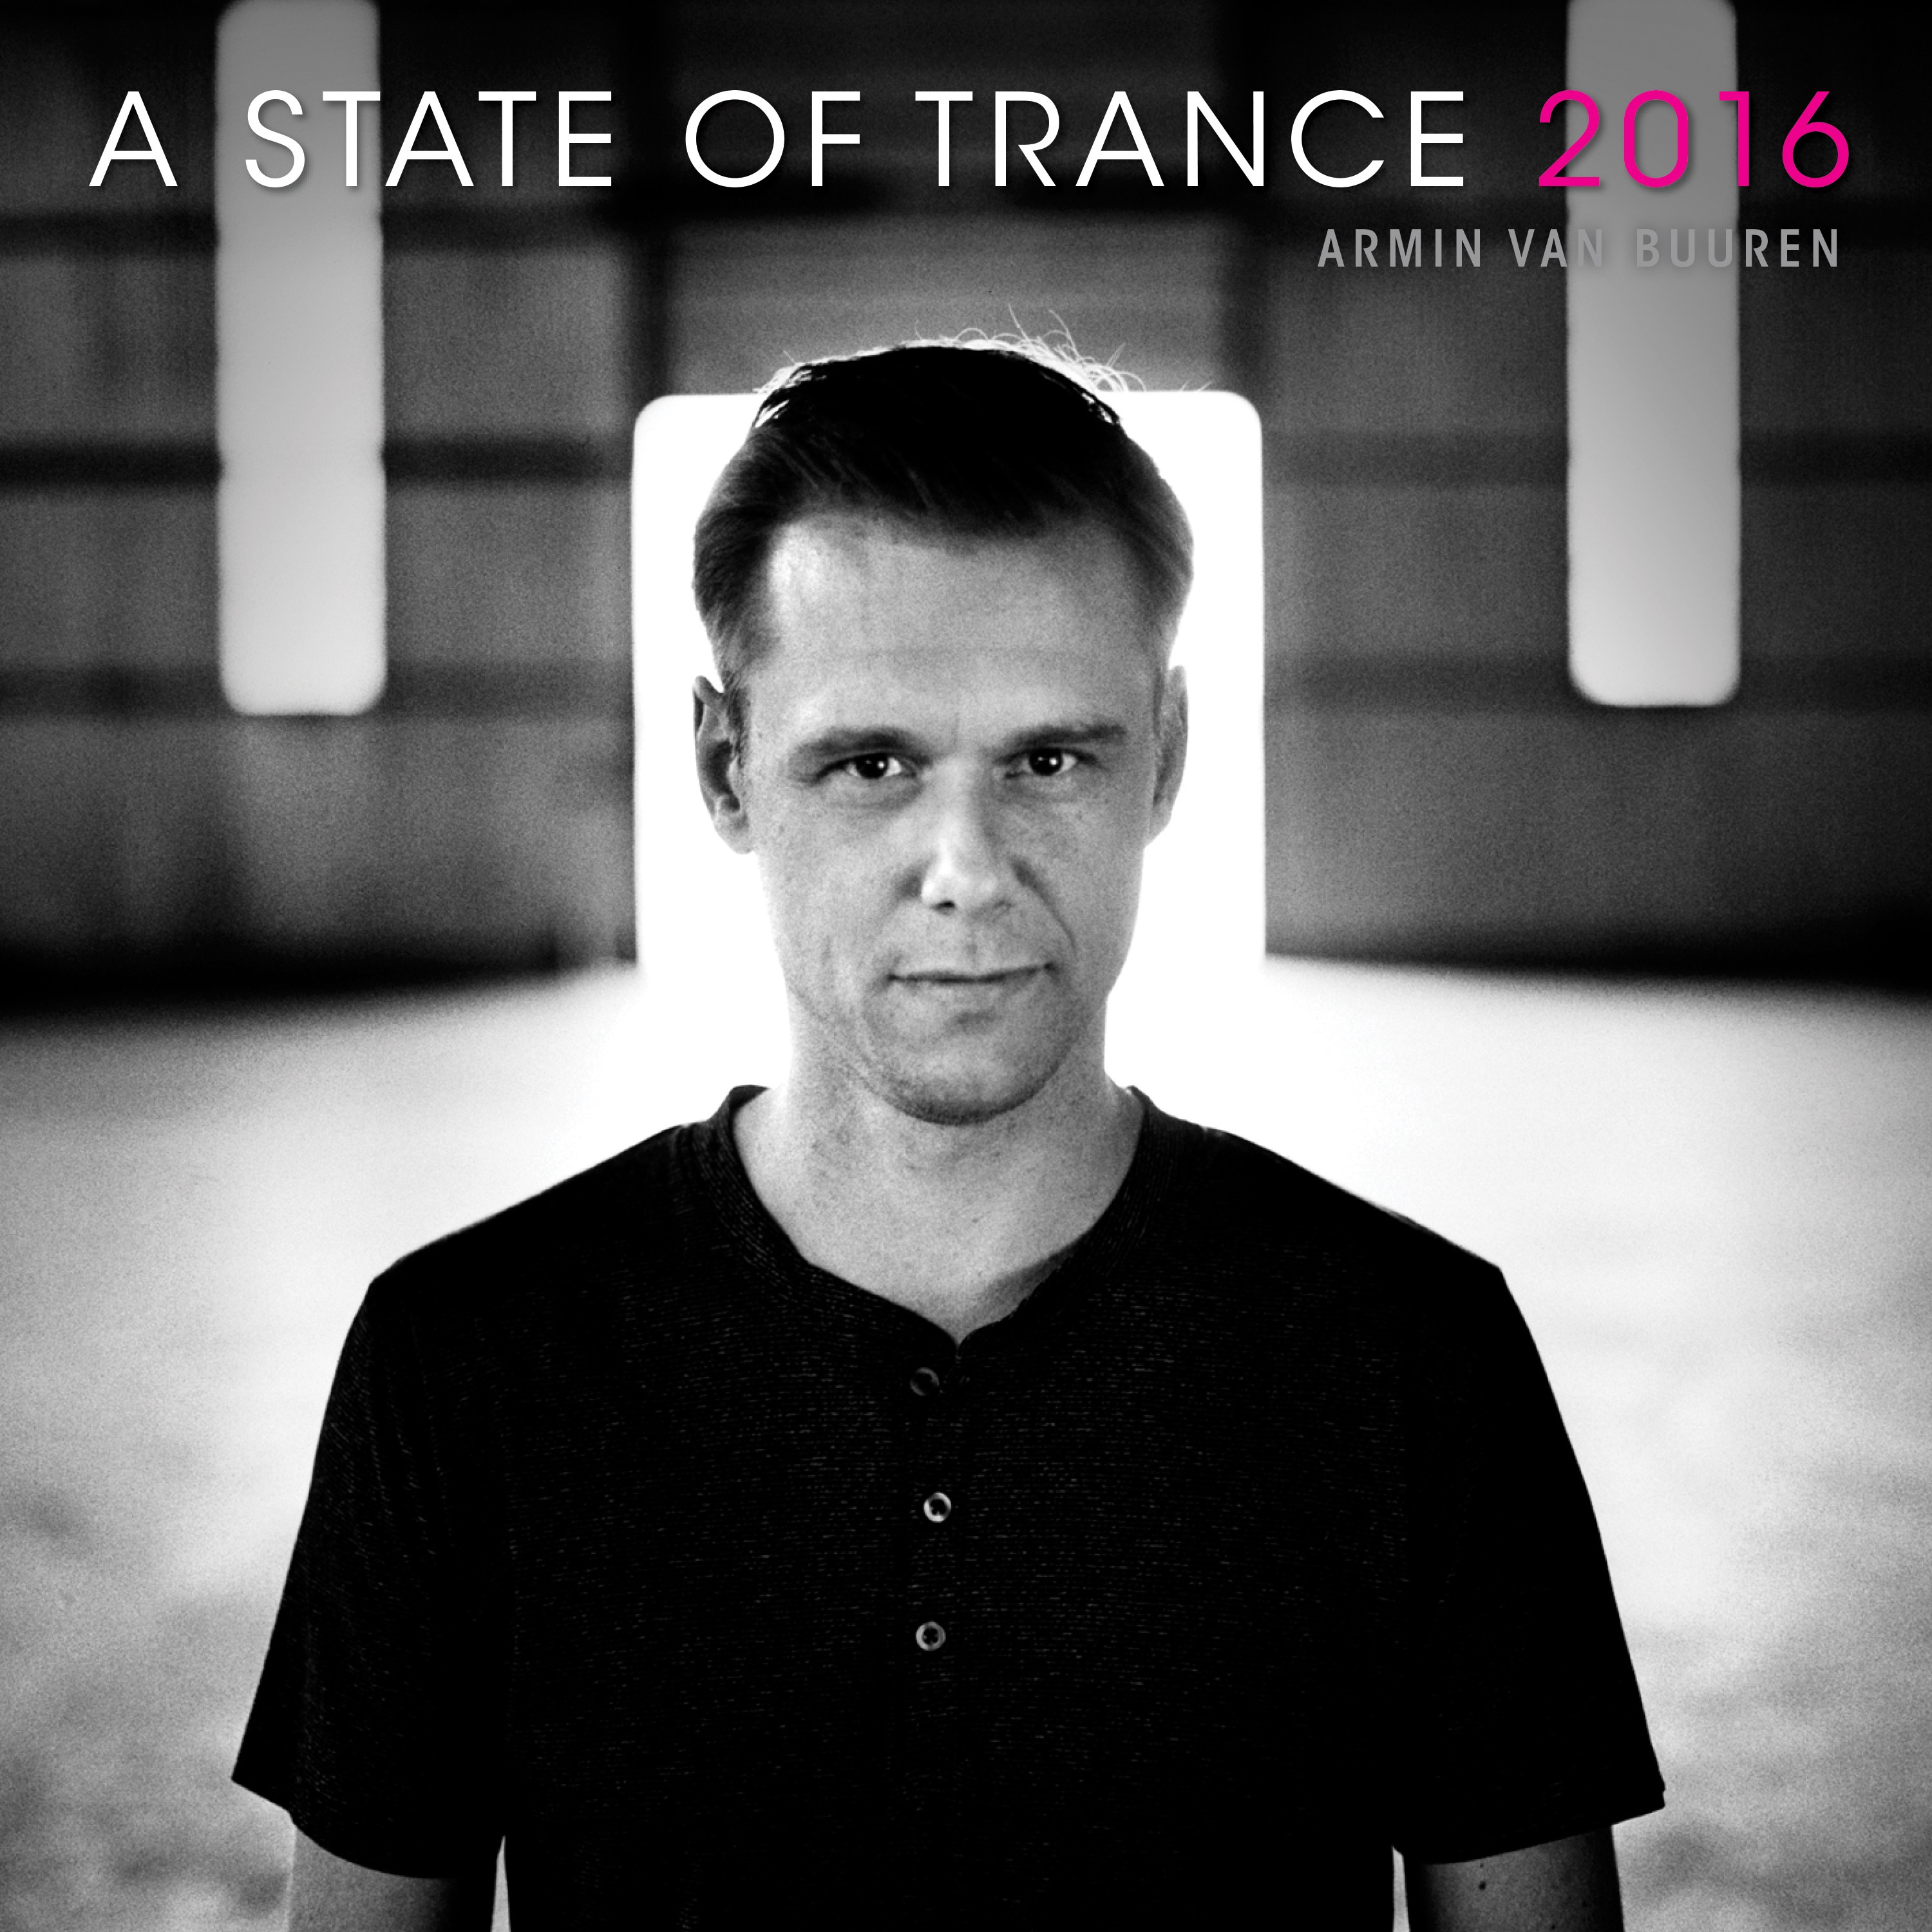 Armin Van Buuren: A State Of Trance 2016 (2 CD) a state of trance 15 years 2 cd